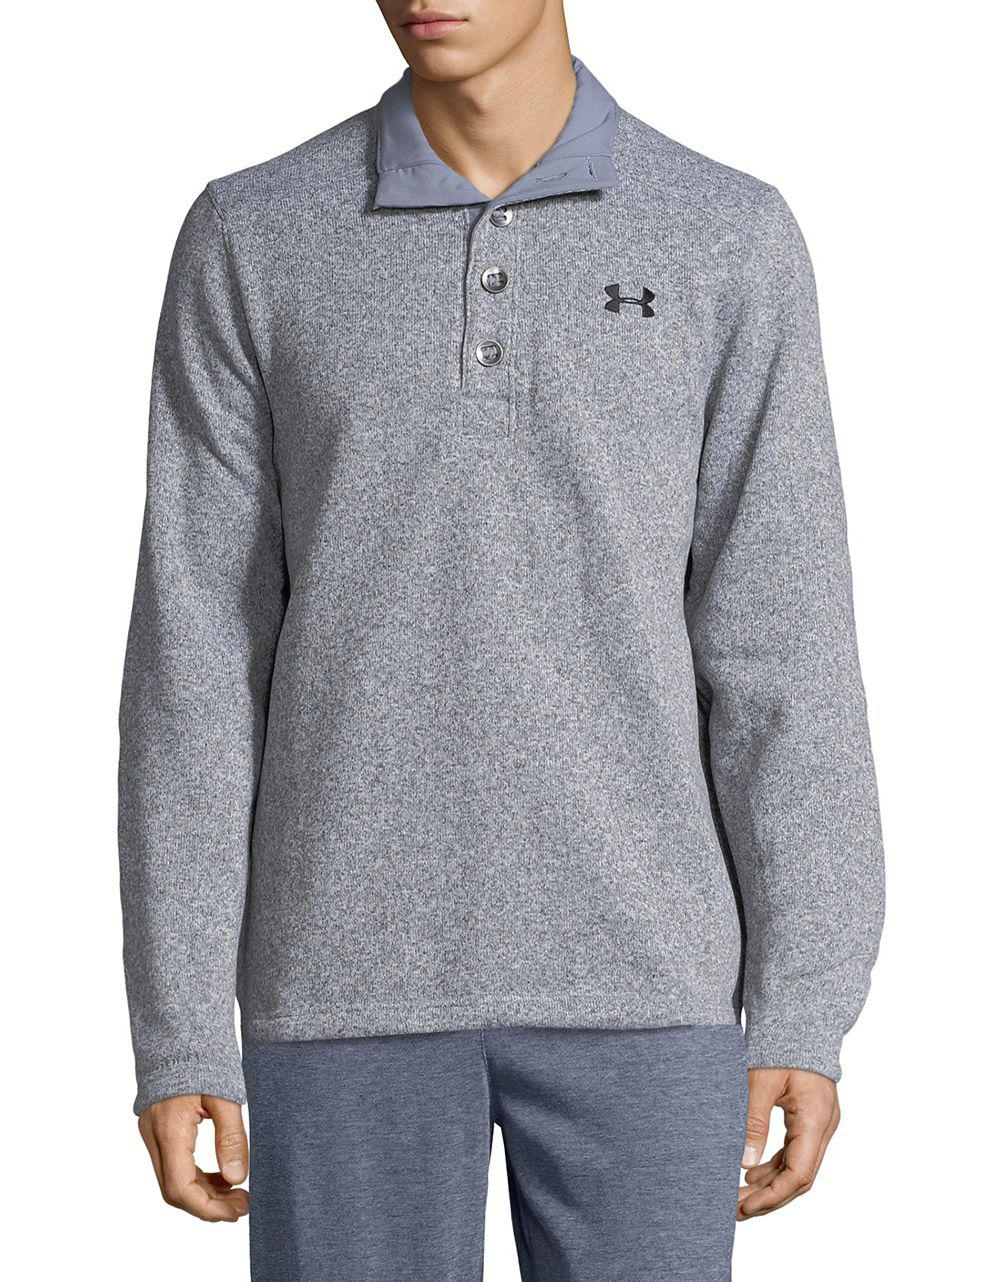 Lyst Under Armour Storm Specialist Dual Layer Sweater In Gray For Men